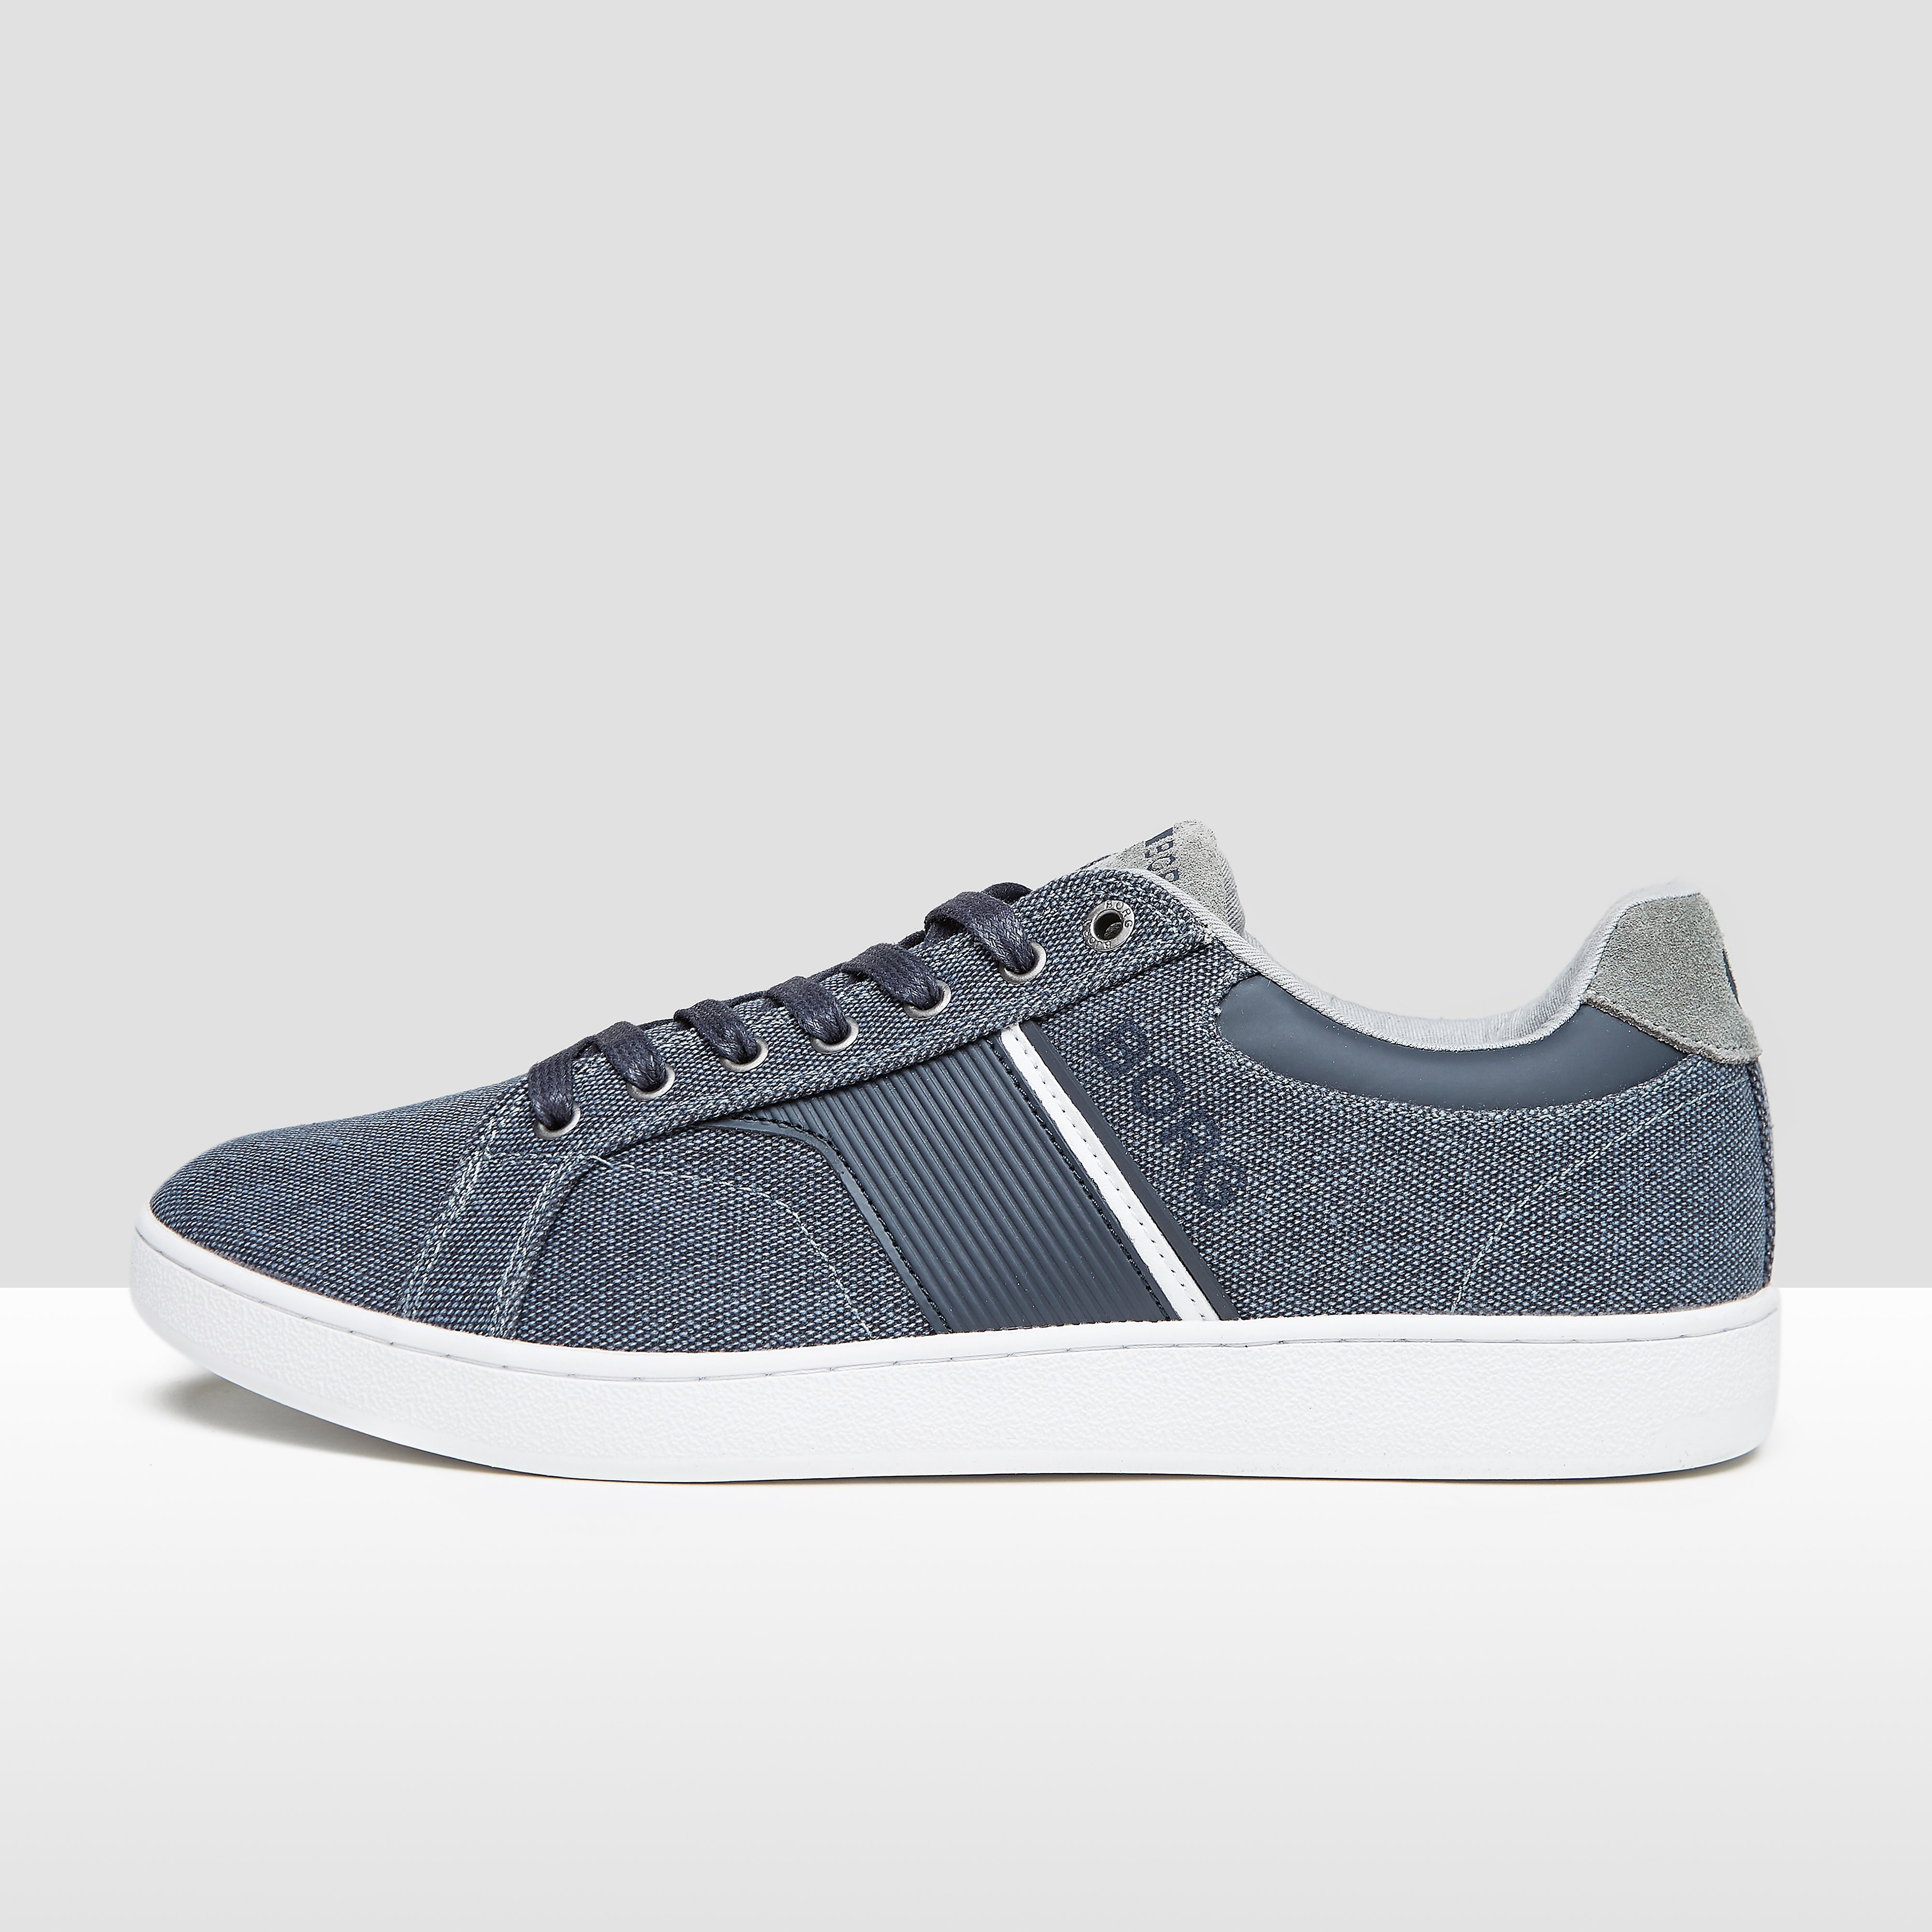 BJORN BORG T600 LOW CVS SNEAKERS GRIJS HEREN